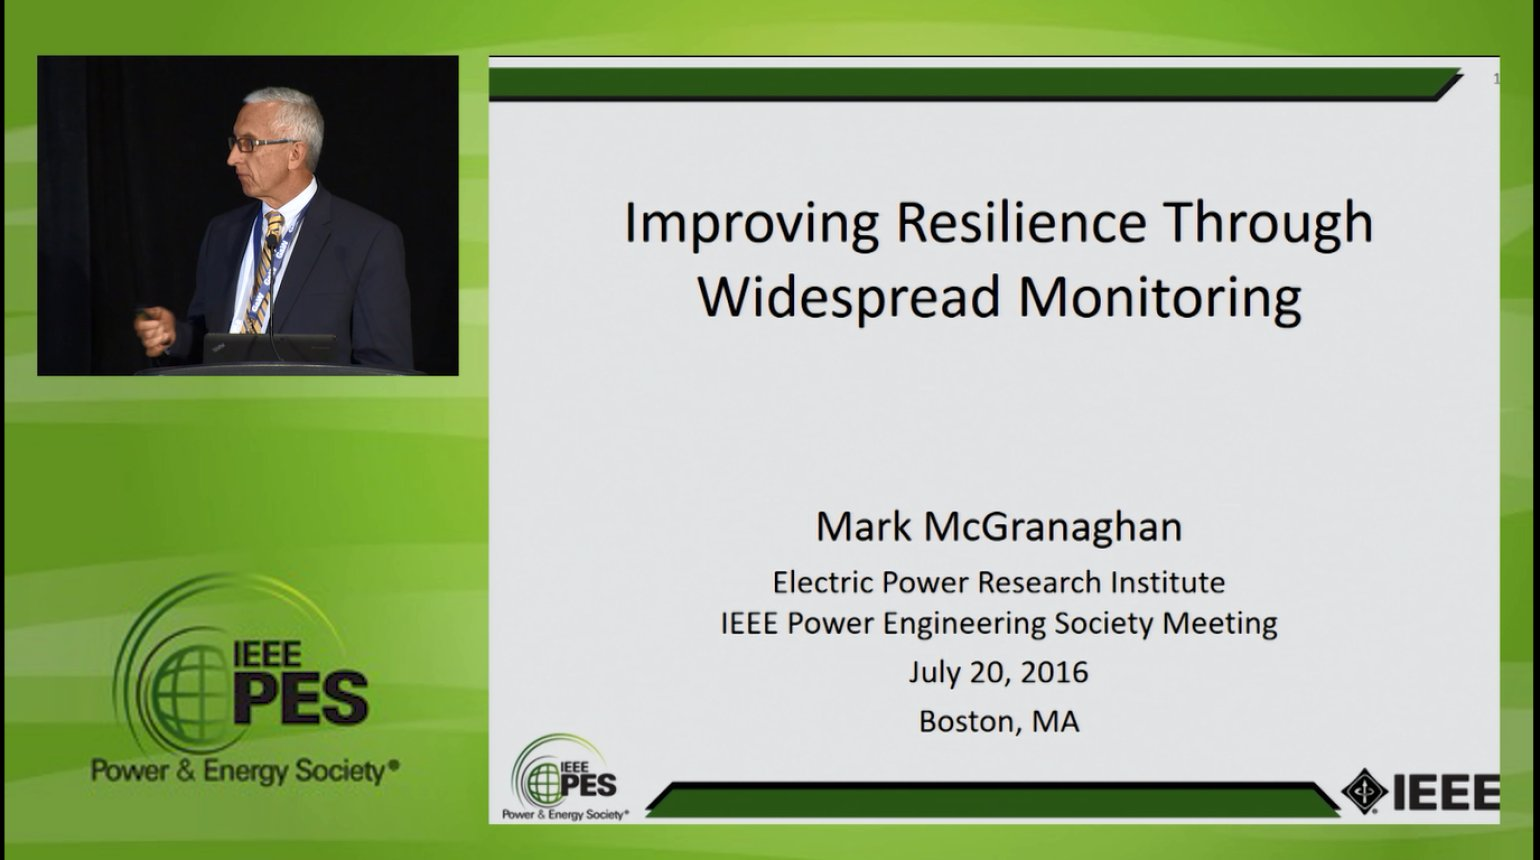 Resiliency in the Power Grid - Improving Resilience Through Widespread Monitoring (Video)